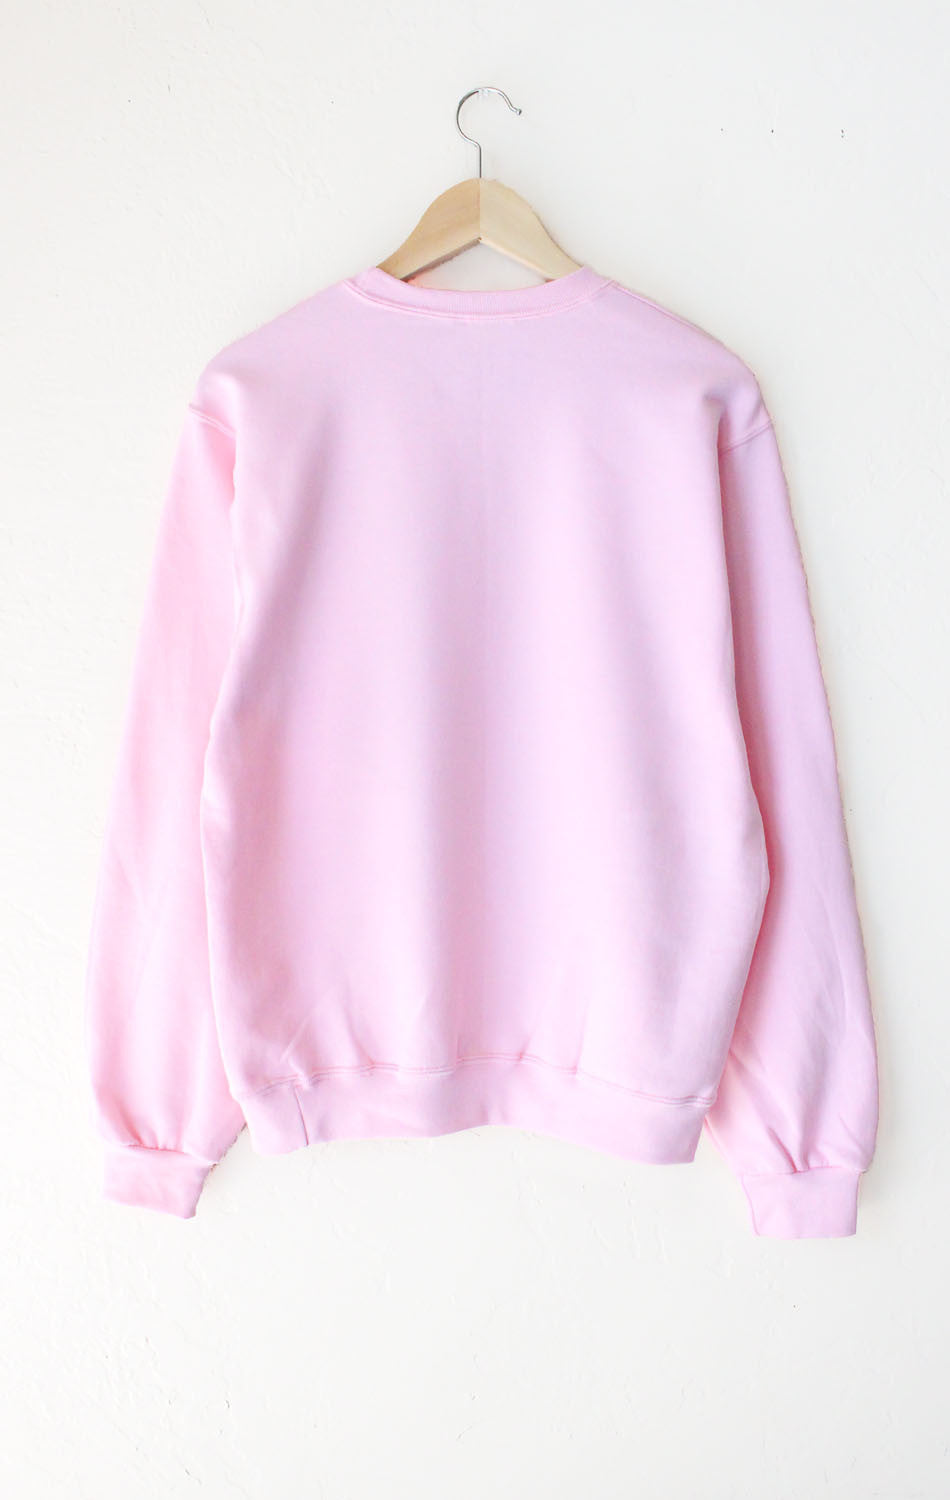 Mermaid For Life Oversized Sweater